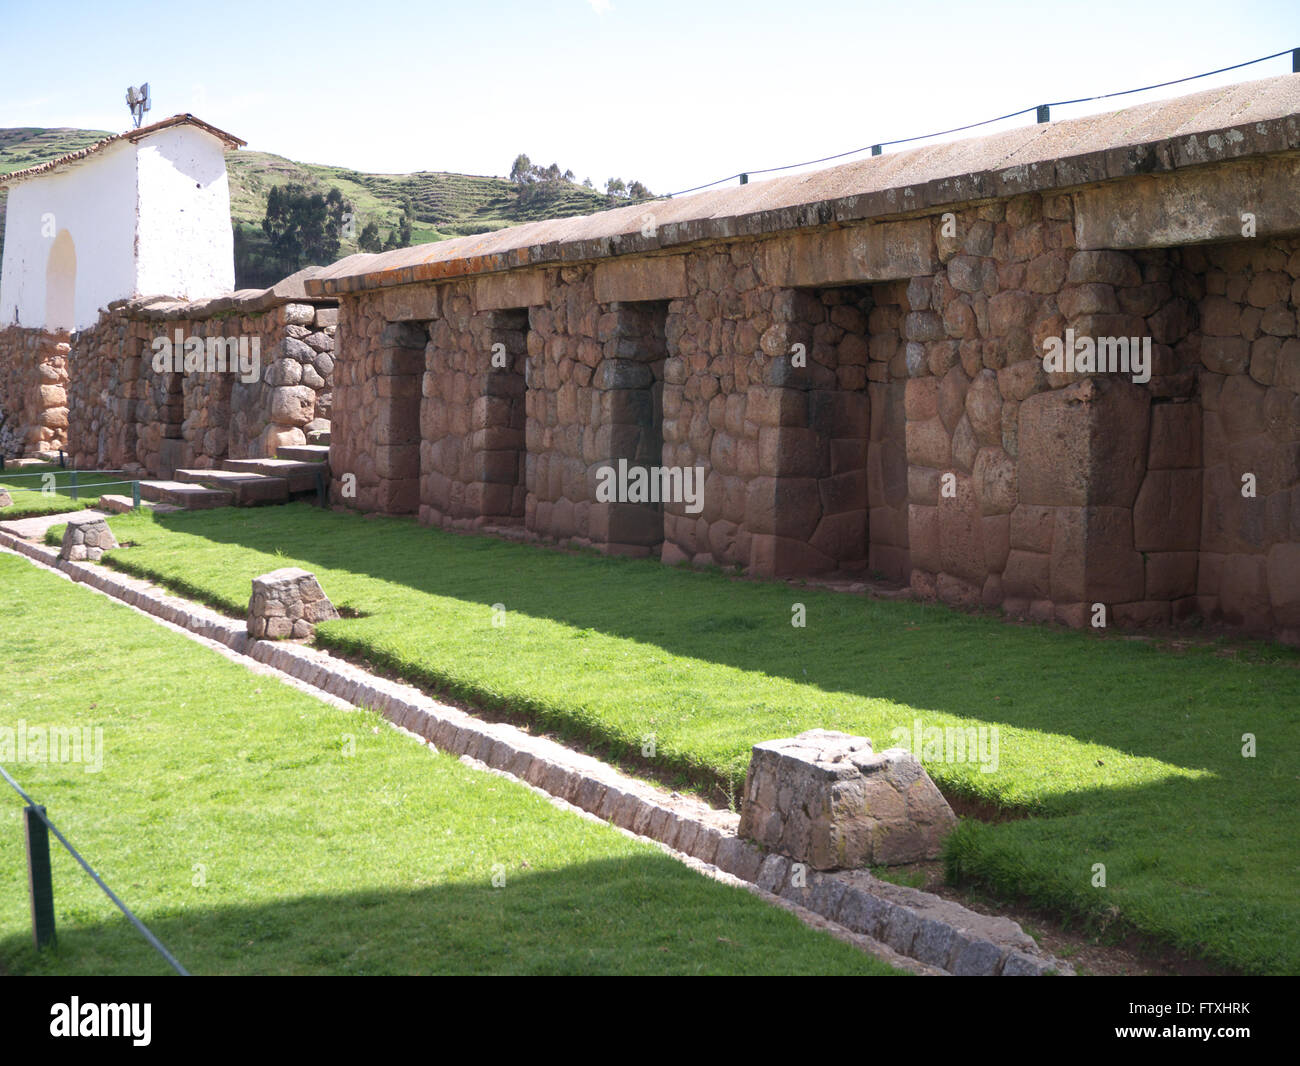 Chinchero ruins in the Sacred Valley of the Incas.  Massive stone wall in main plaza with ten trapezoidal niches - Stock Image